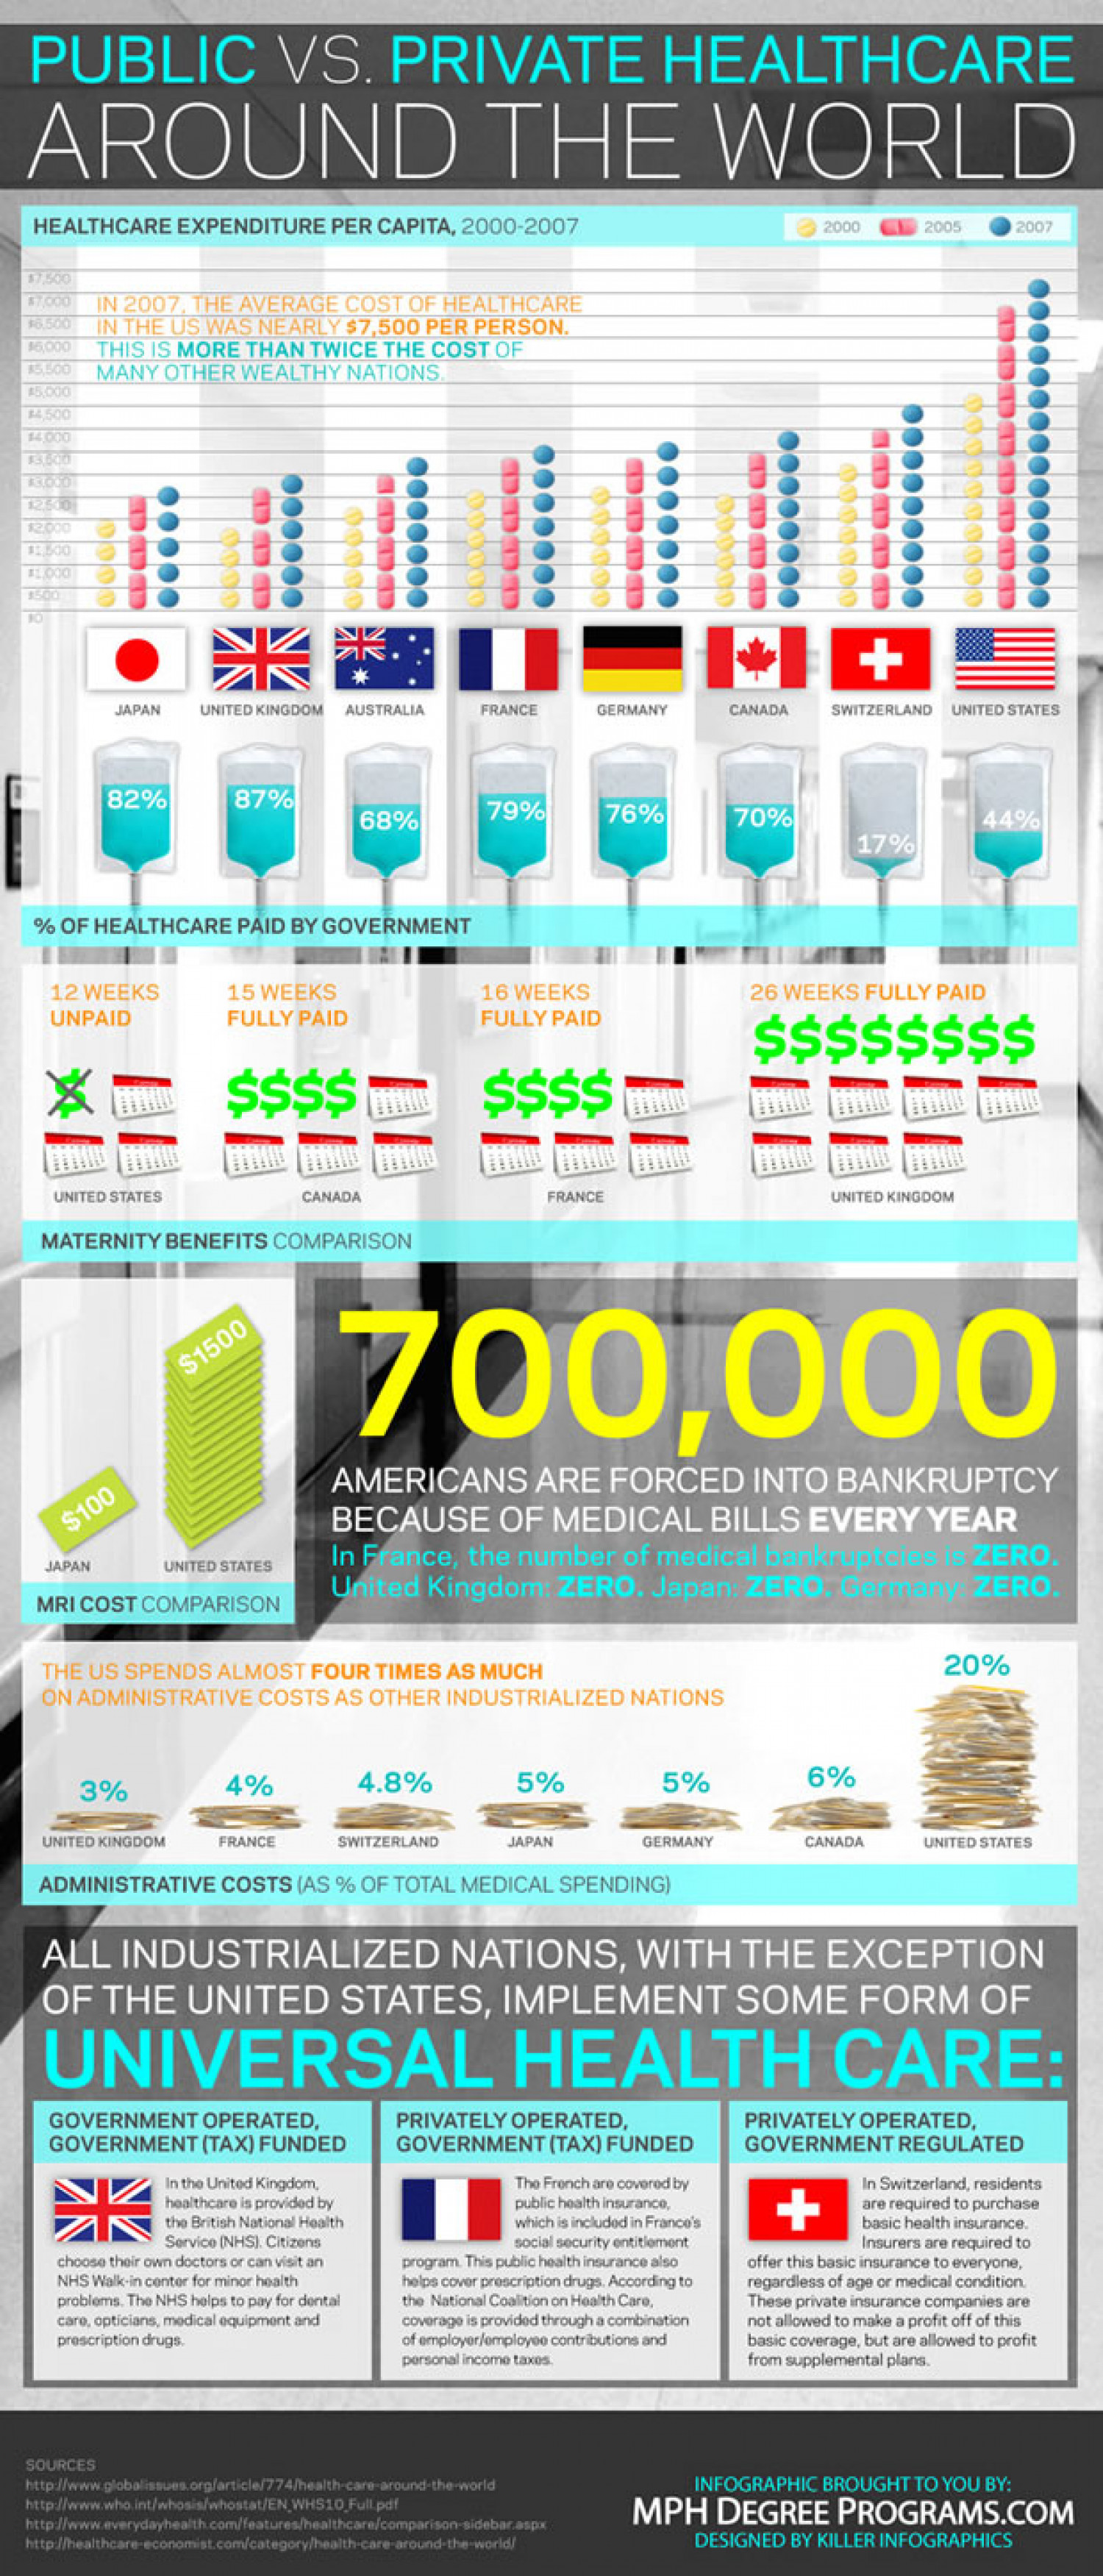 Public vs. Private Healthcare Around the World  Infographic